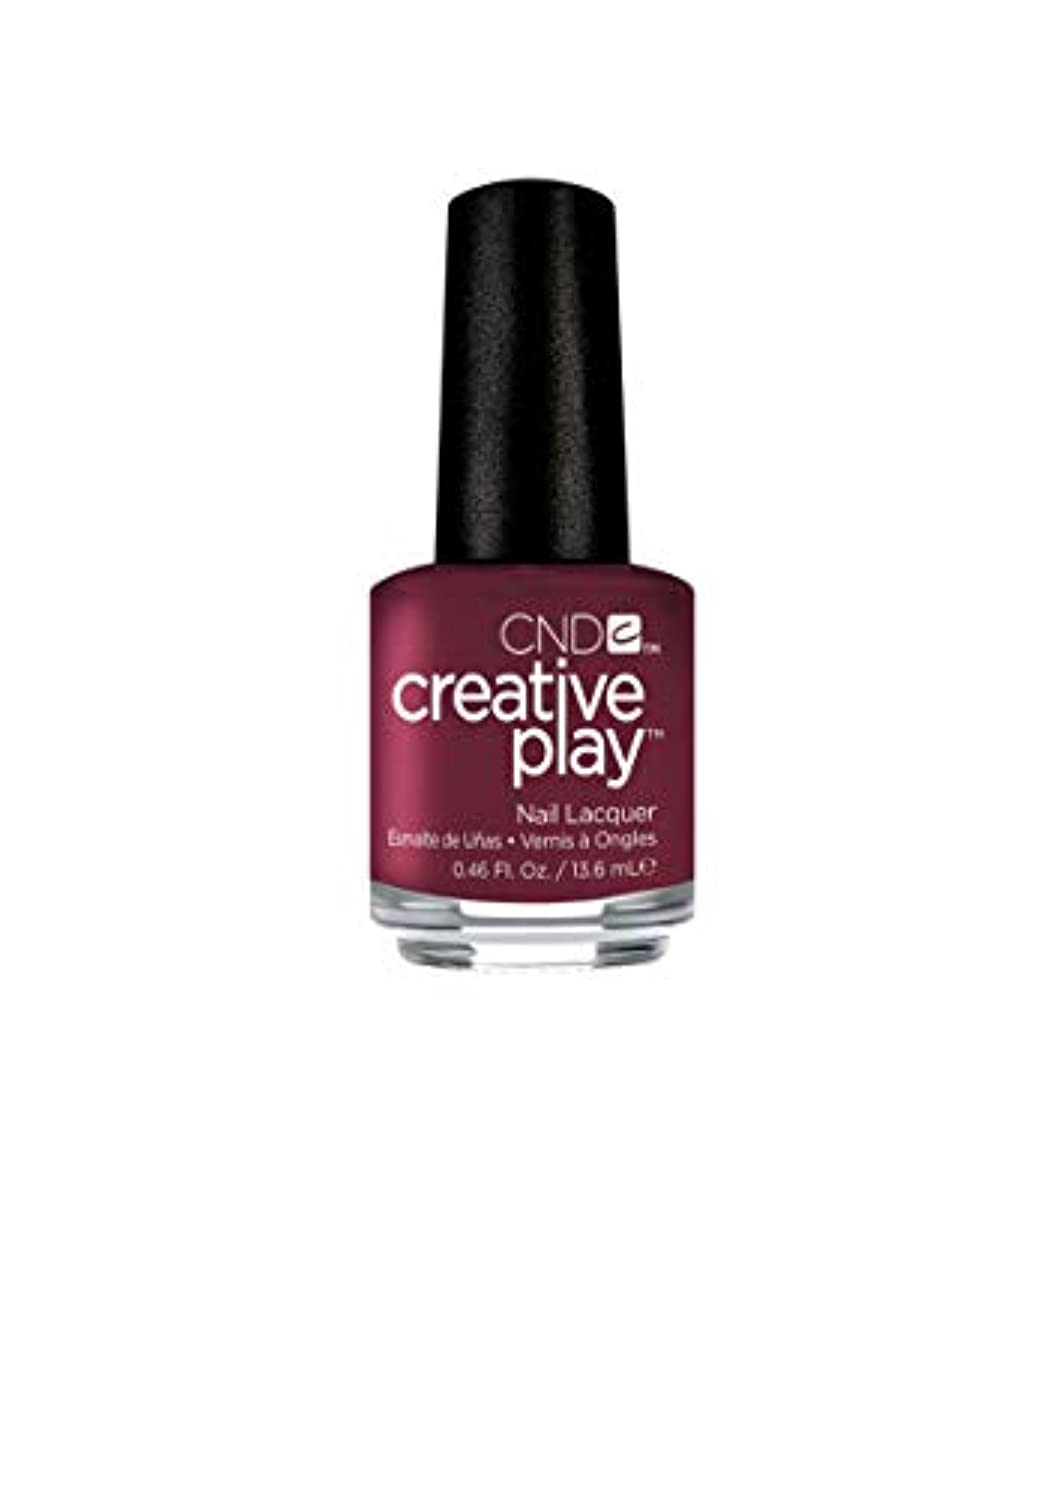 CND Creative Play Lacquer - Currantly Single - 0.46oz / 13.6ml